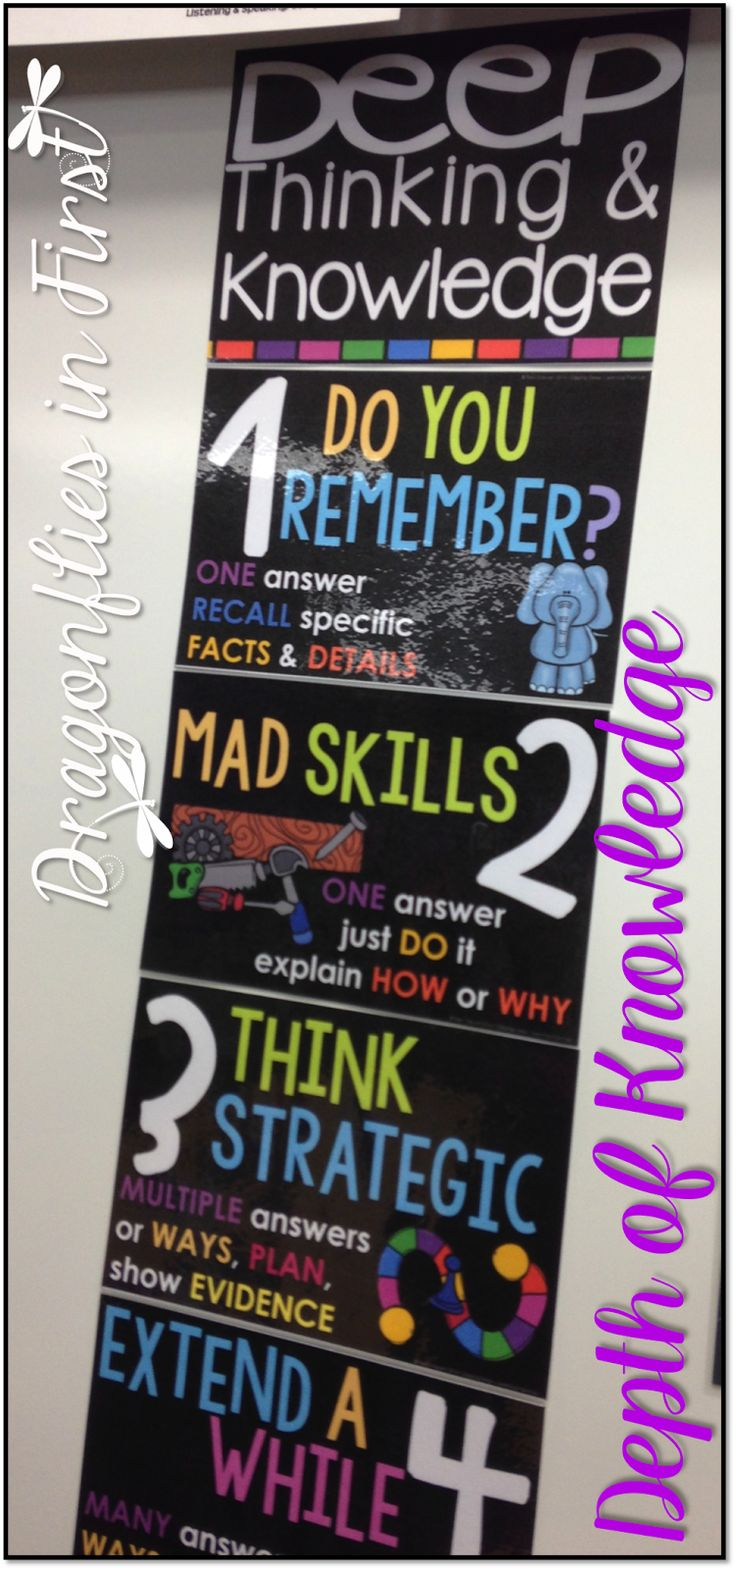 Engaging Learning Practices and Higher Levels of Thinking!